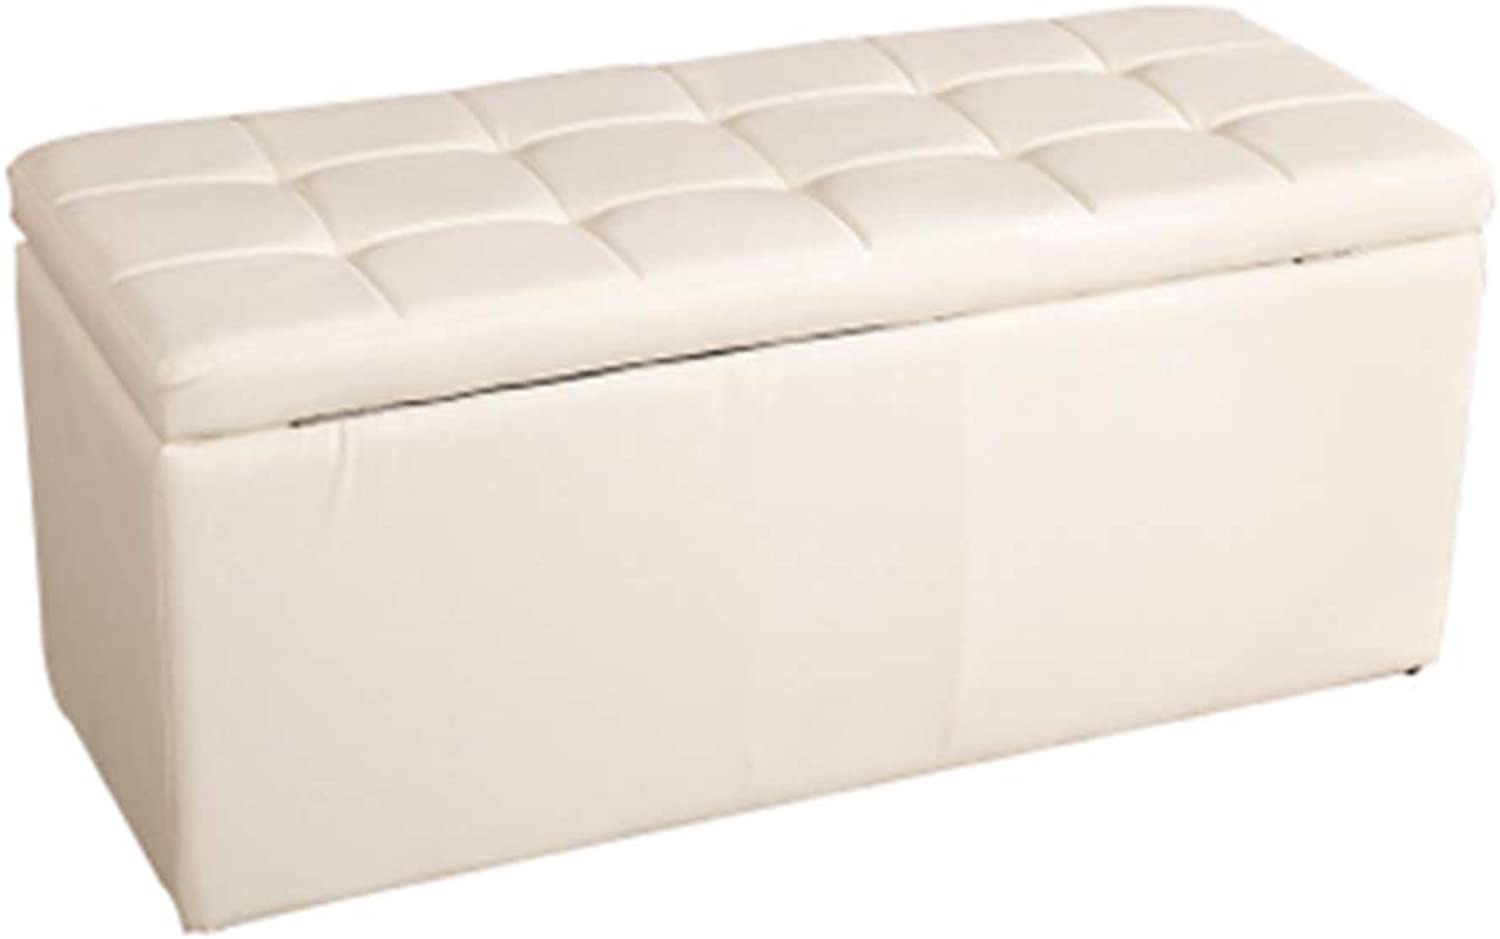 JIANFEI Footstool Sofa Stool Garden Bench Storage PU Cushion, 9 colors 7 Size (color   White, Size   30x30x36cm)